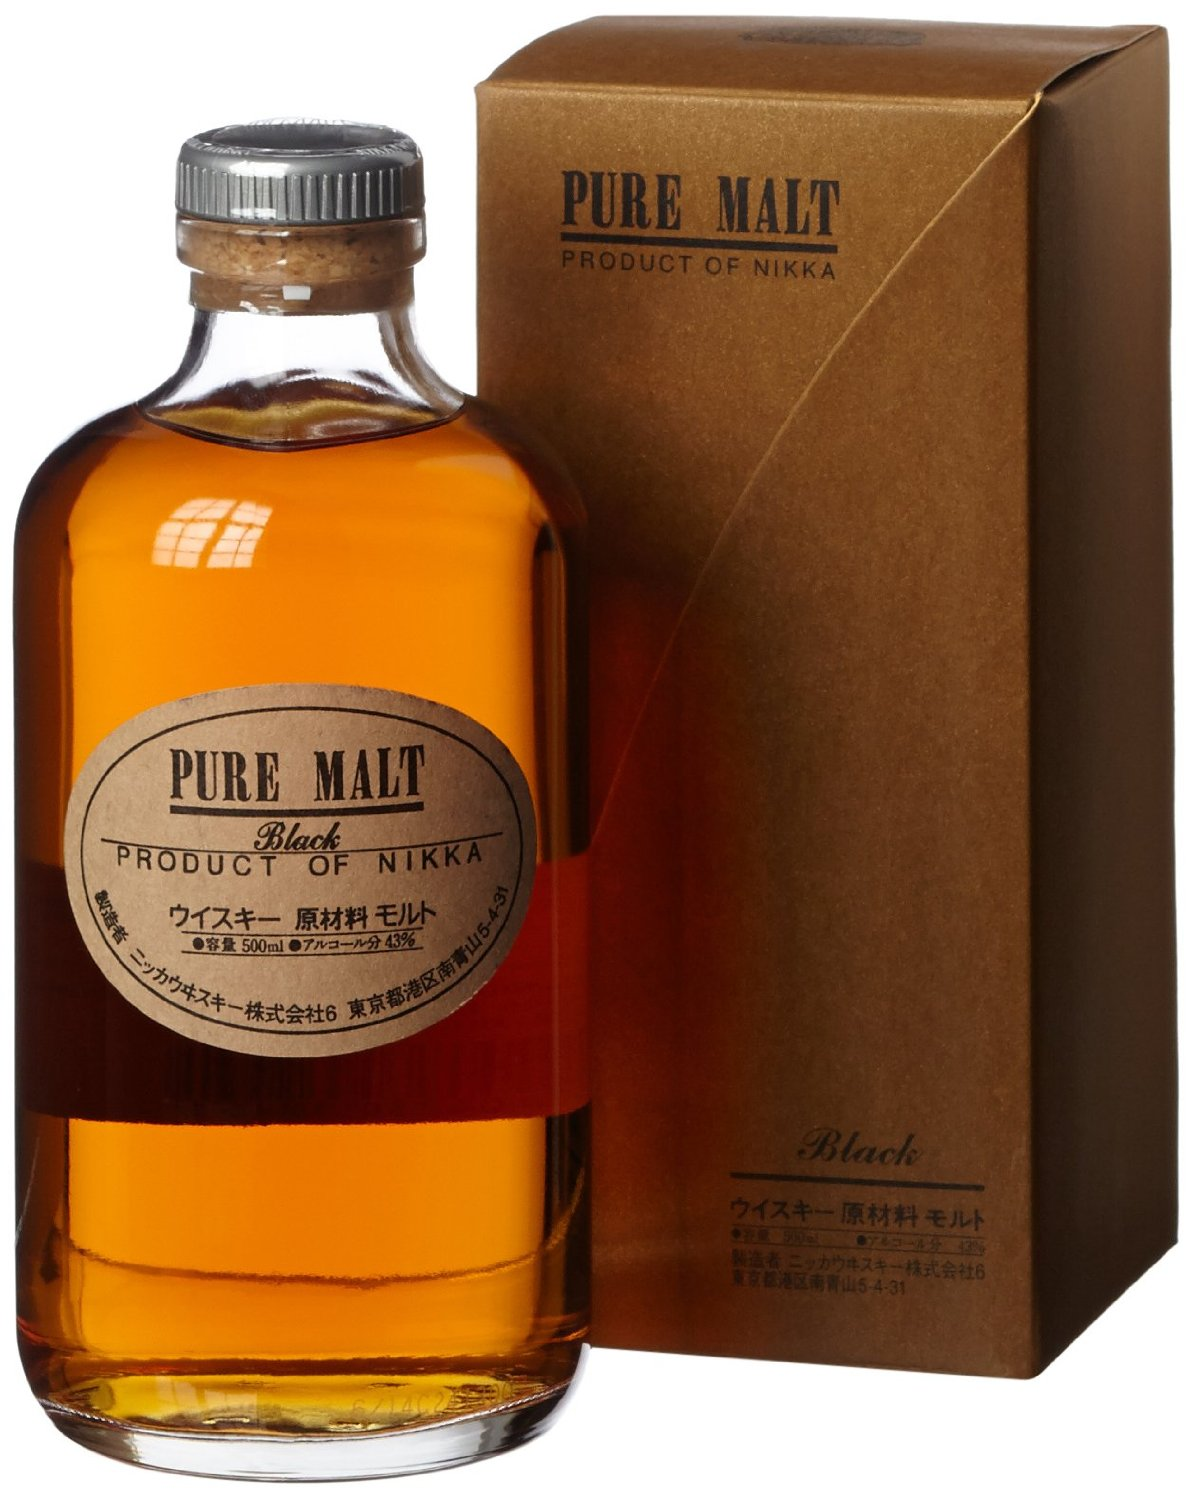 Nikka Pure Malt Black Label